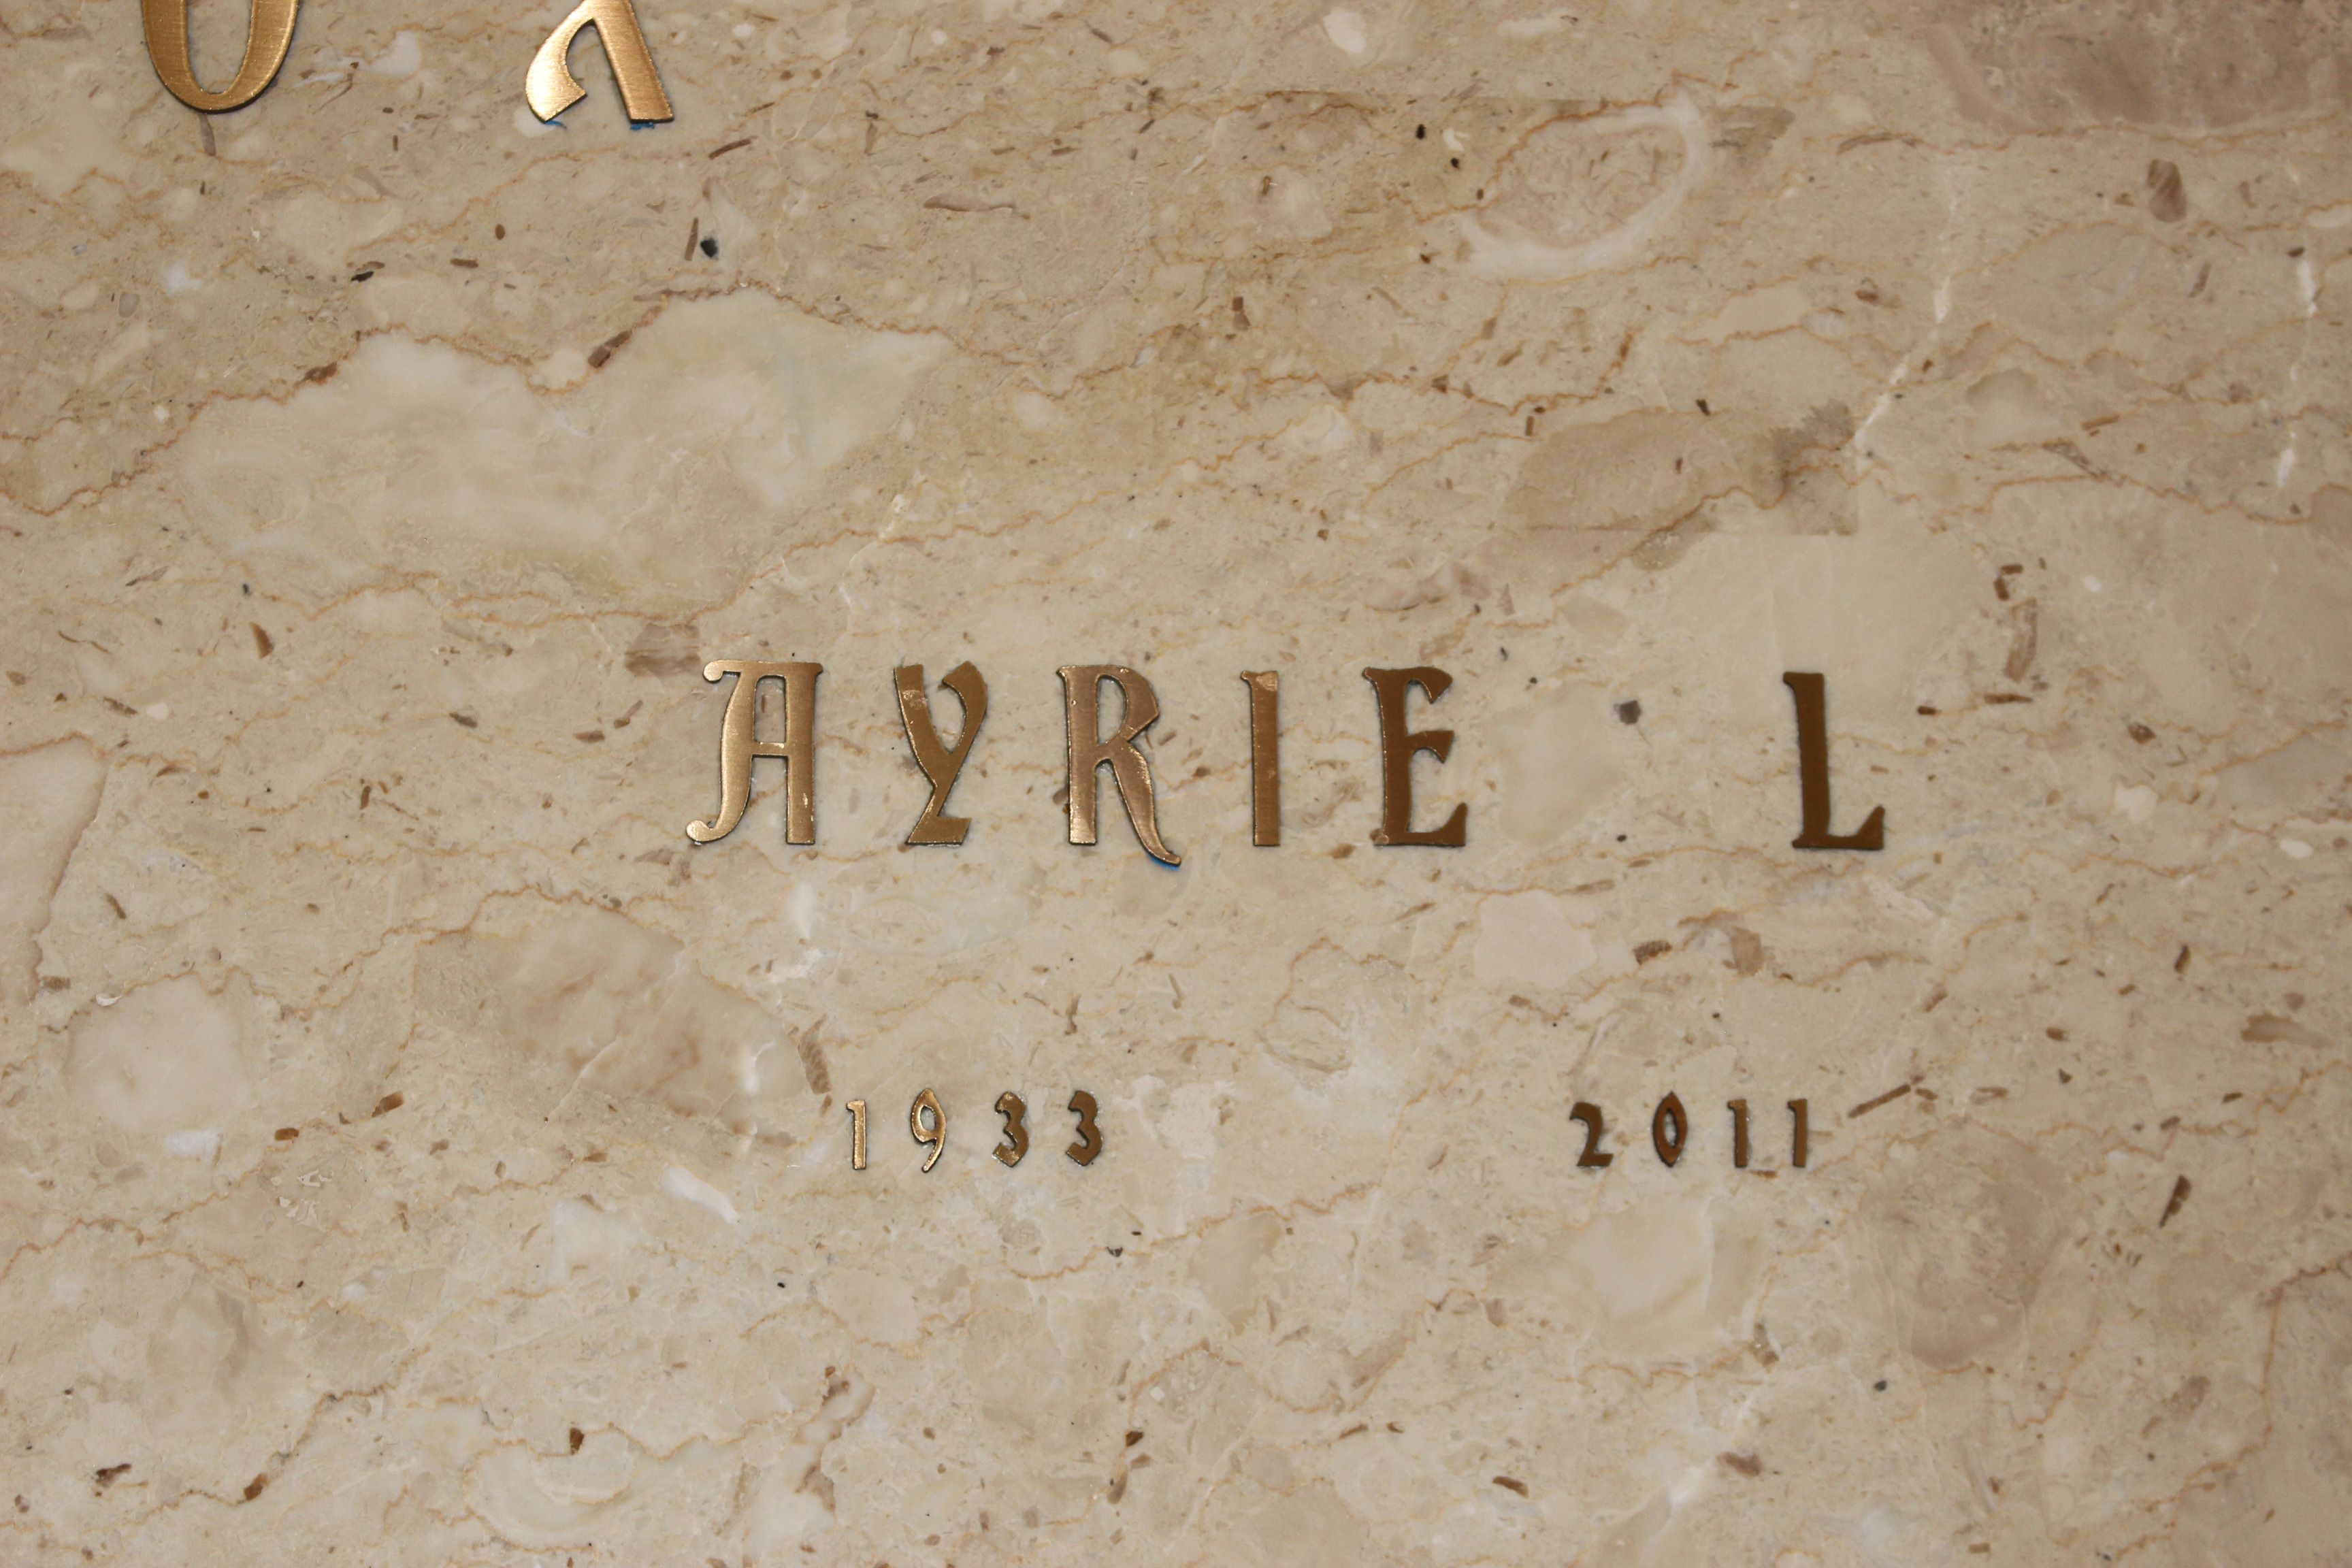 Ayrie Lee Wilson Silcox (1933-2011) - Find A Grave Memorial